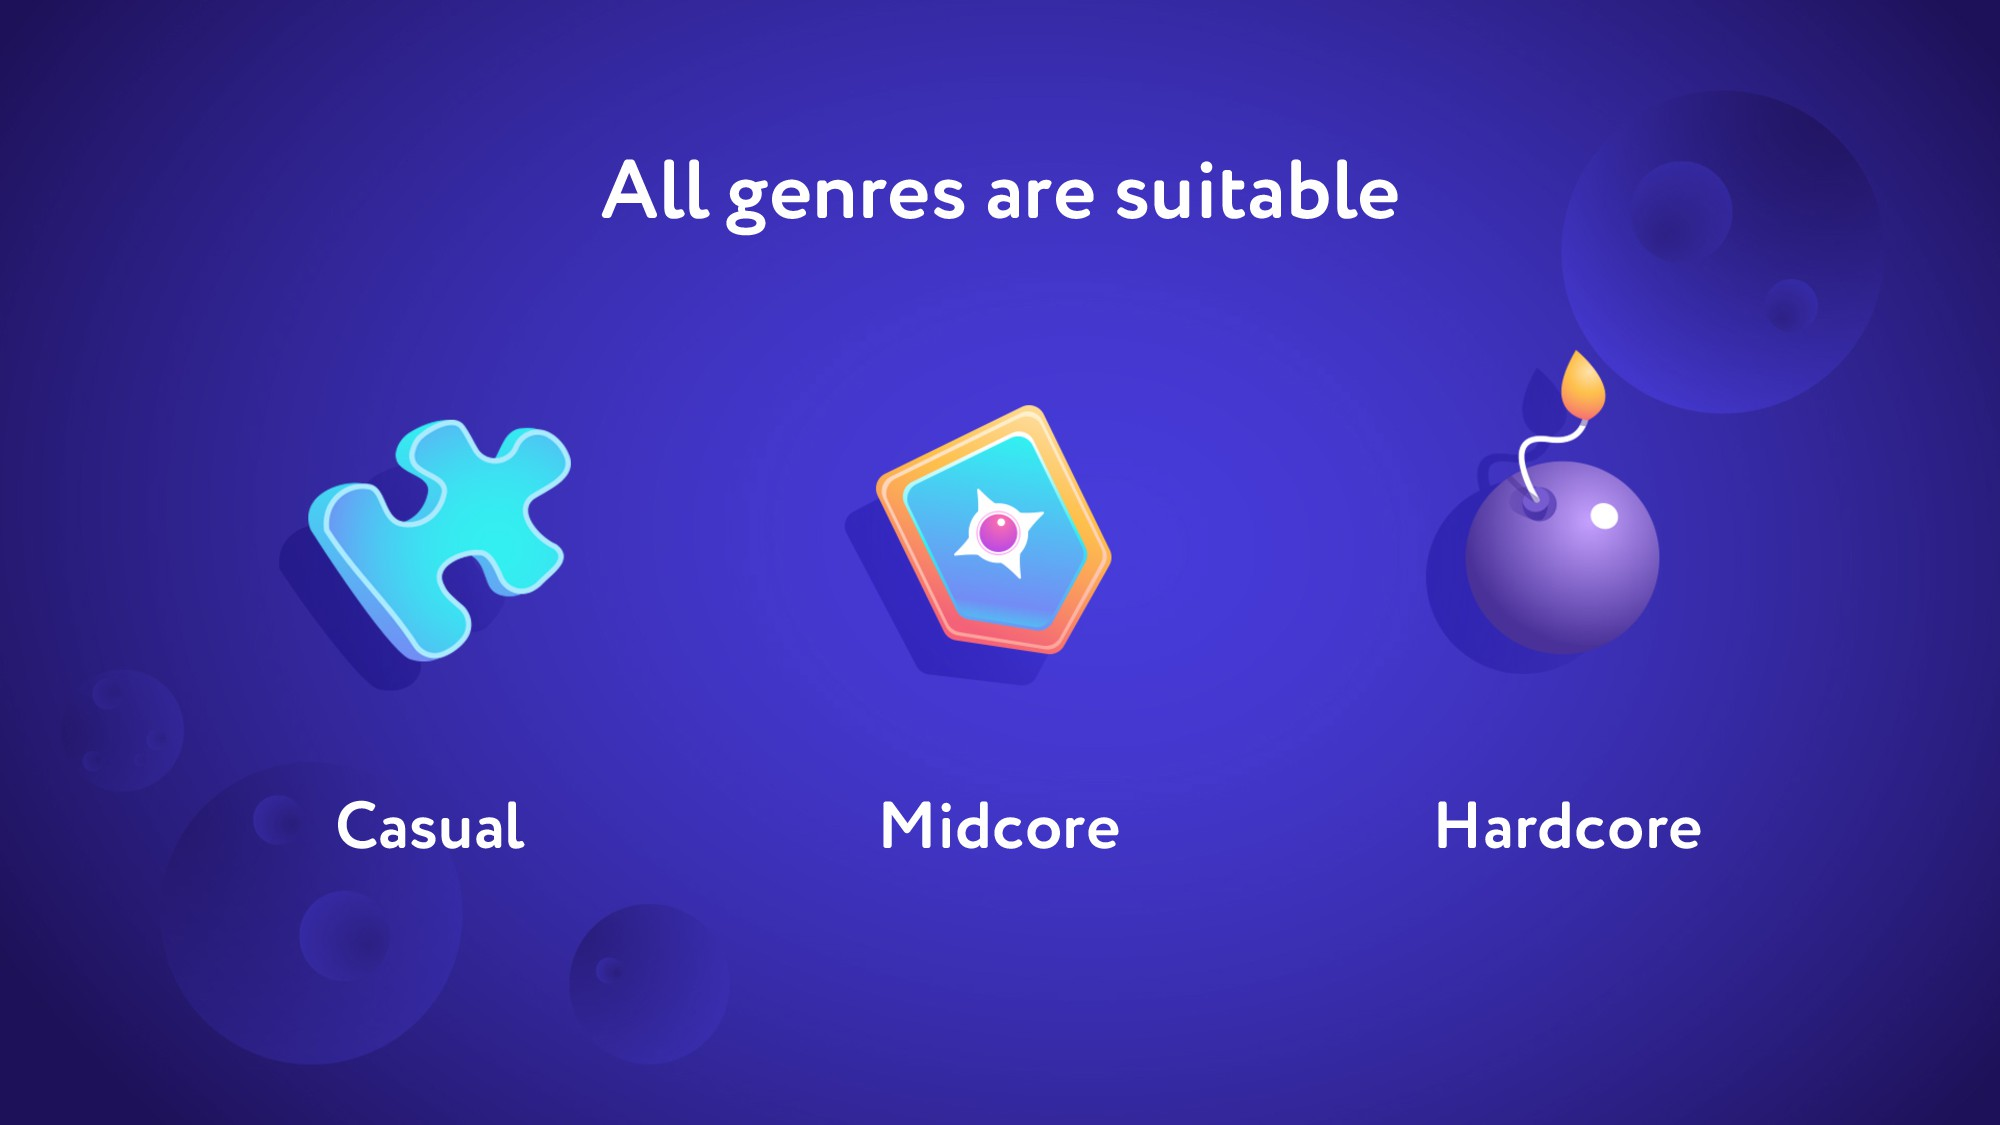 All genres are suitable Casual Midcore Hardcore